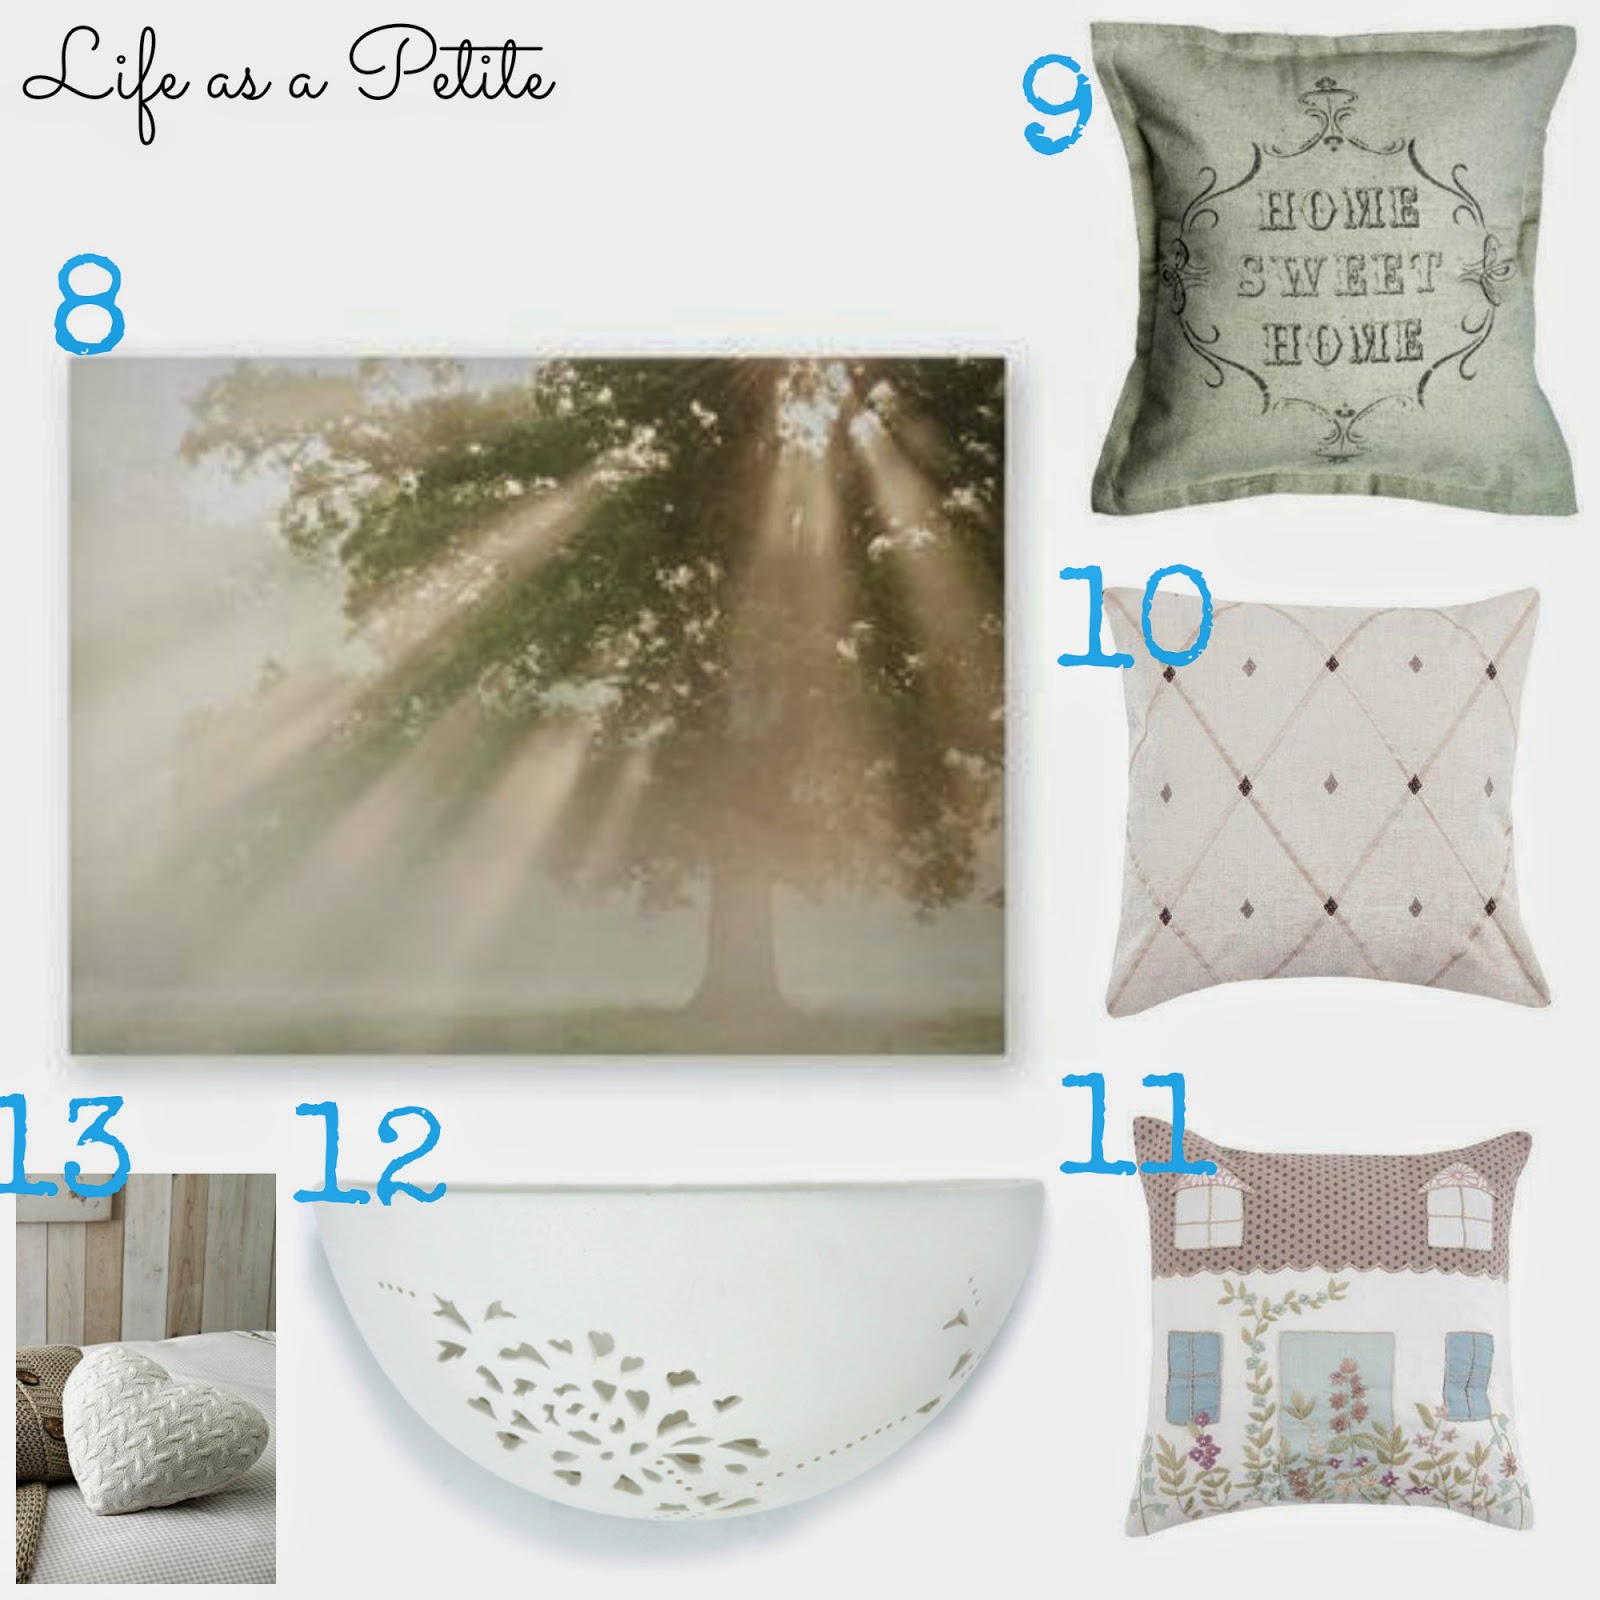 Homeware Haul || Life as a Petite